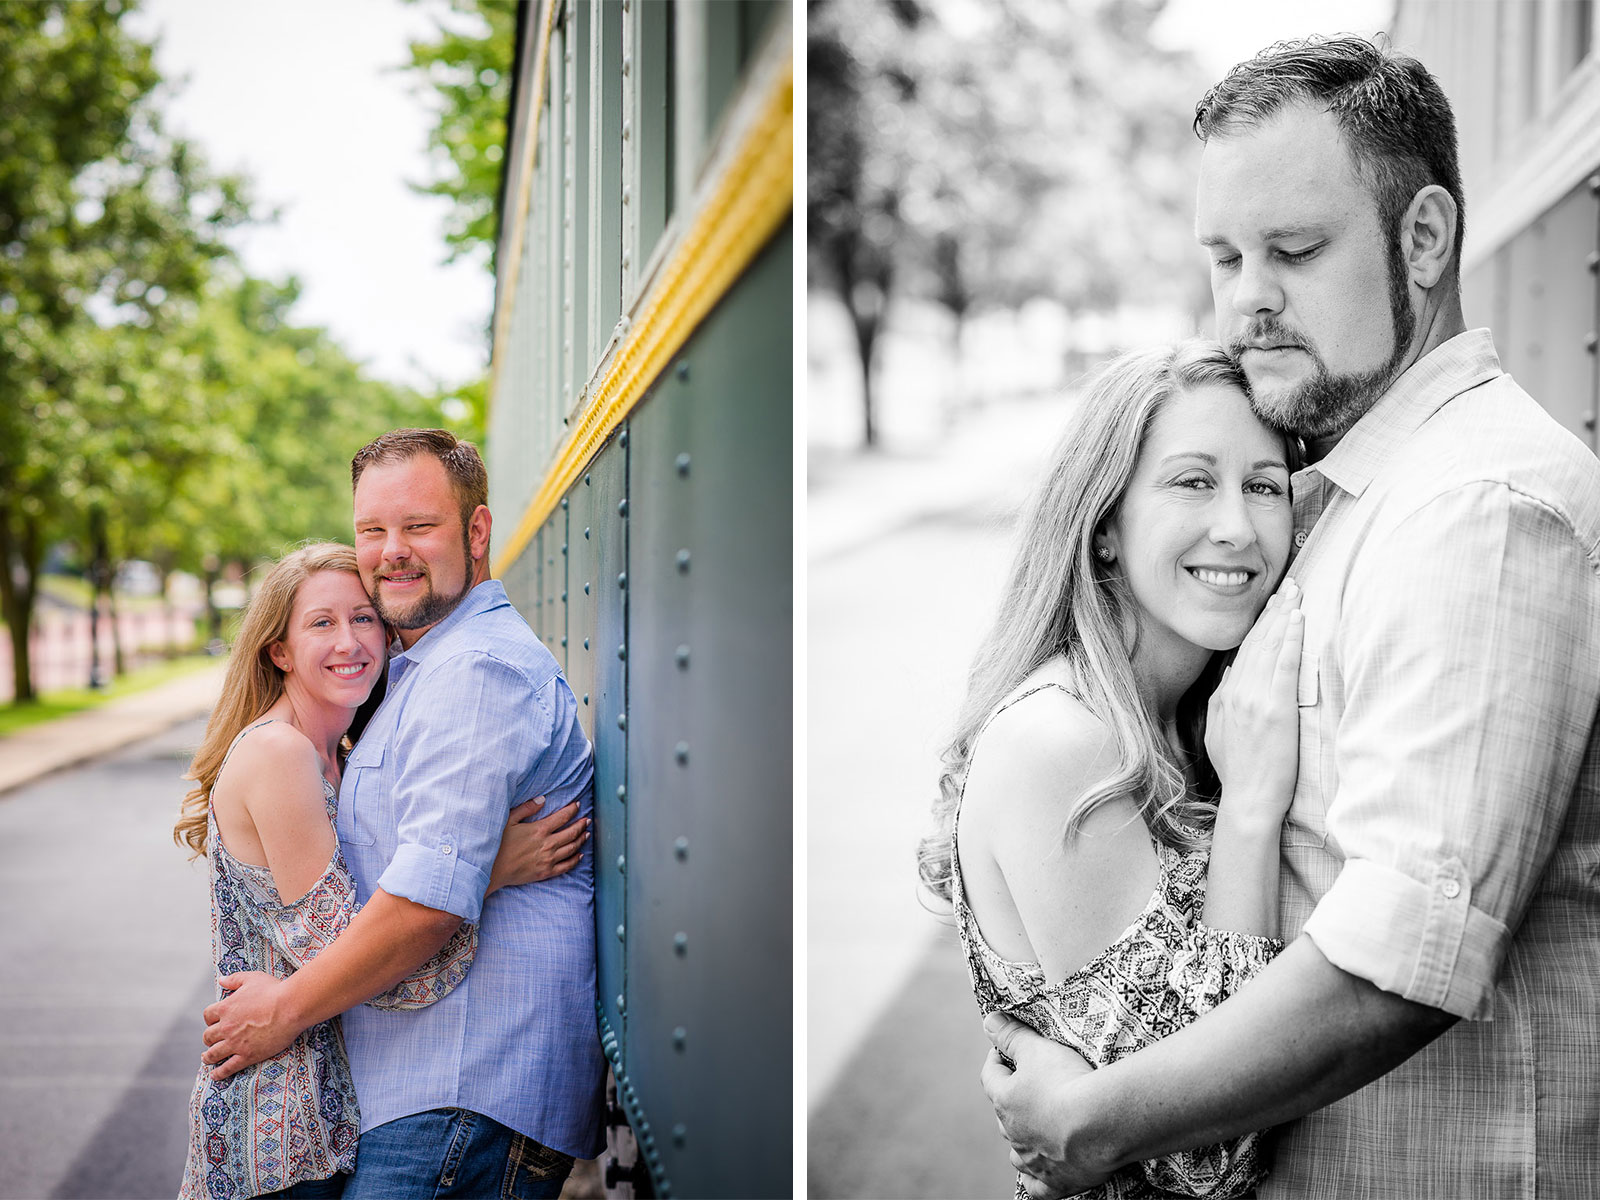 Eric_and_Christy_Photography_Blog_Kelly_Matt_Engagement-6-7